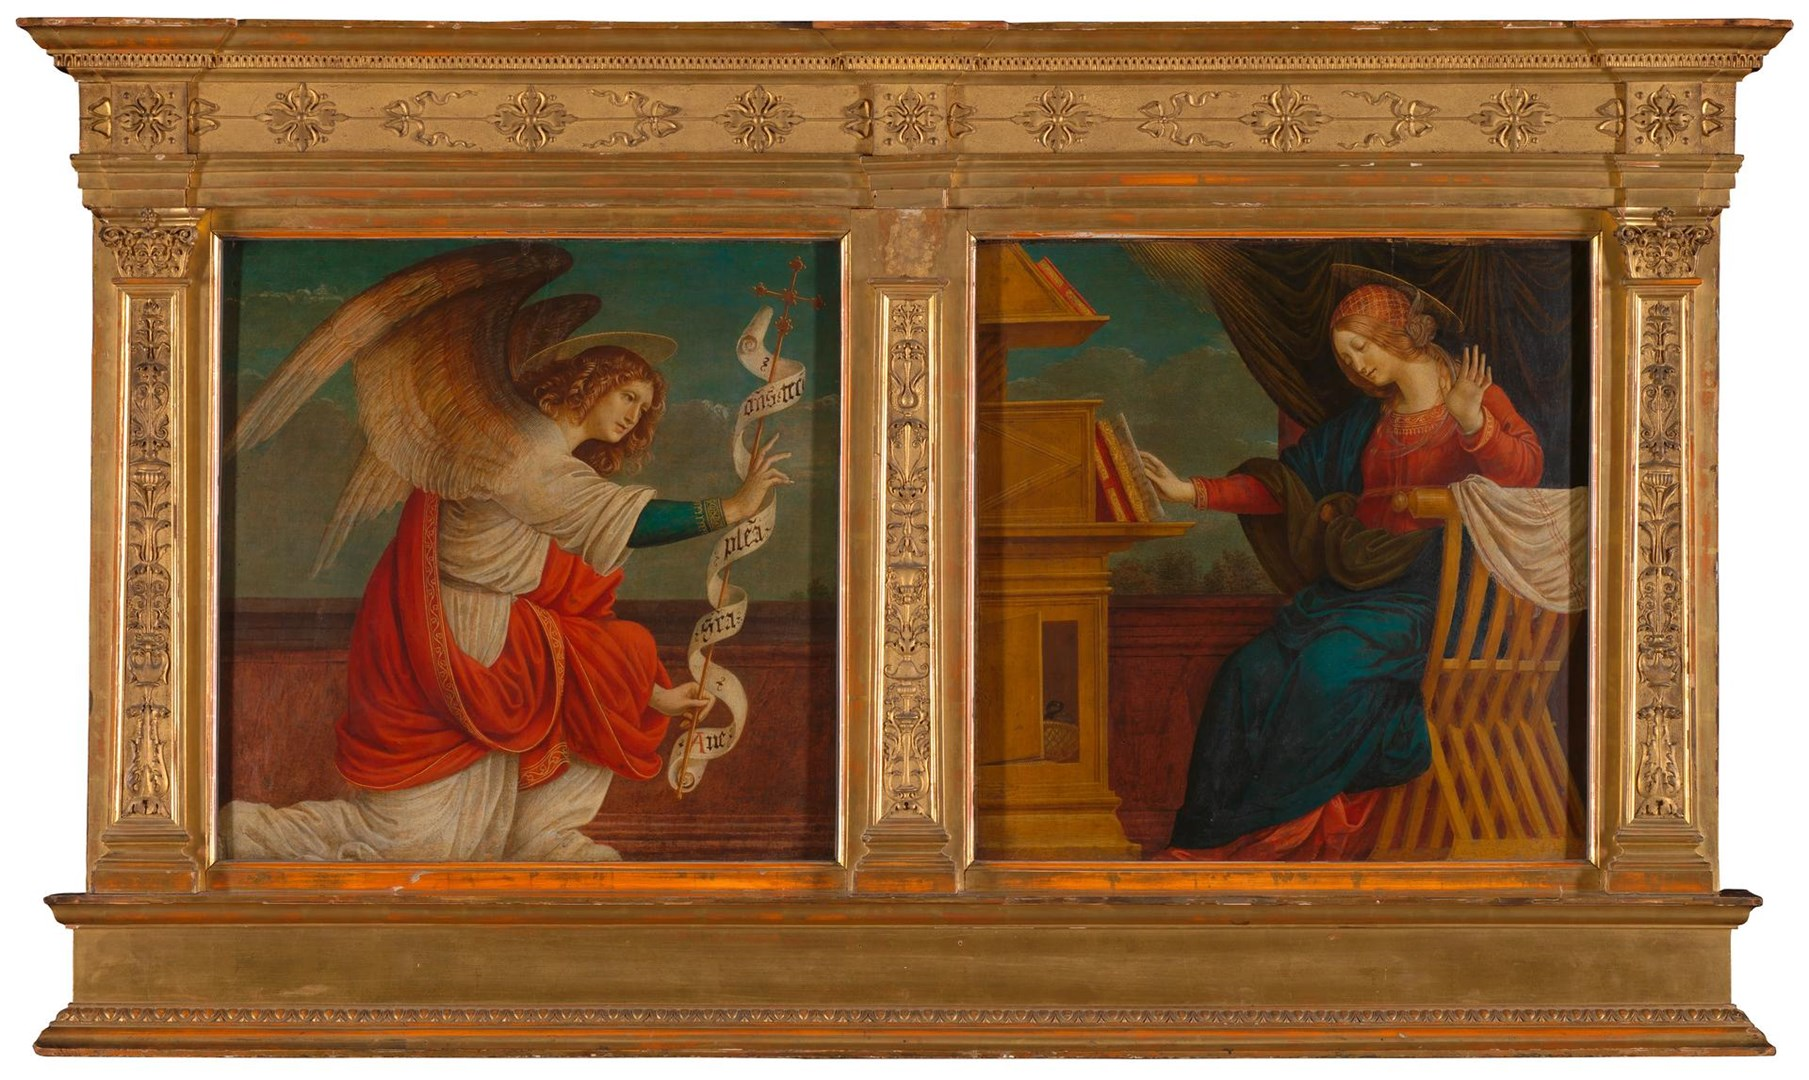 Panels from an Altarpiece: The Annunciation by Gaudenzio Ferrari